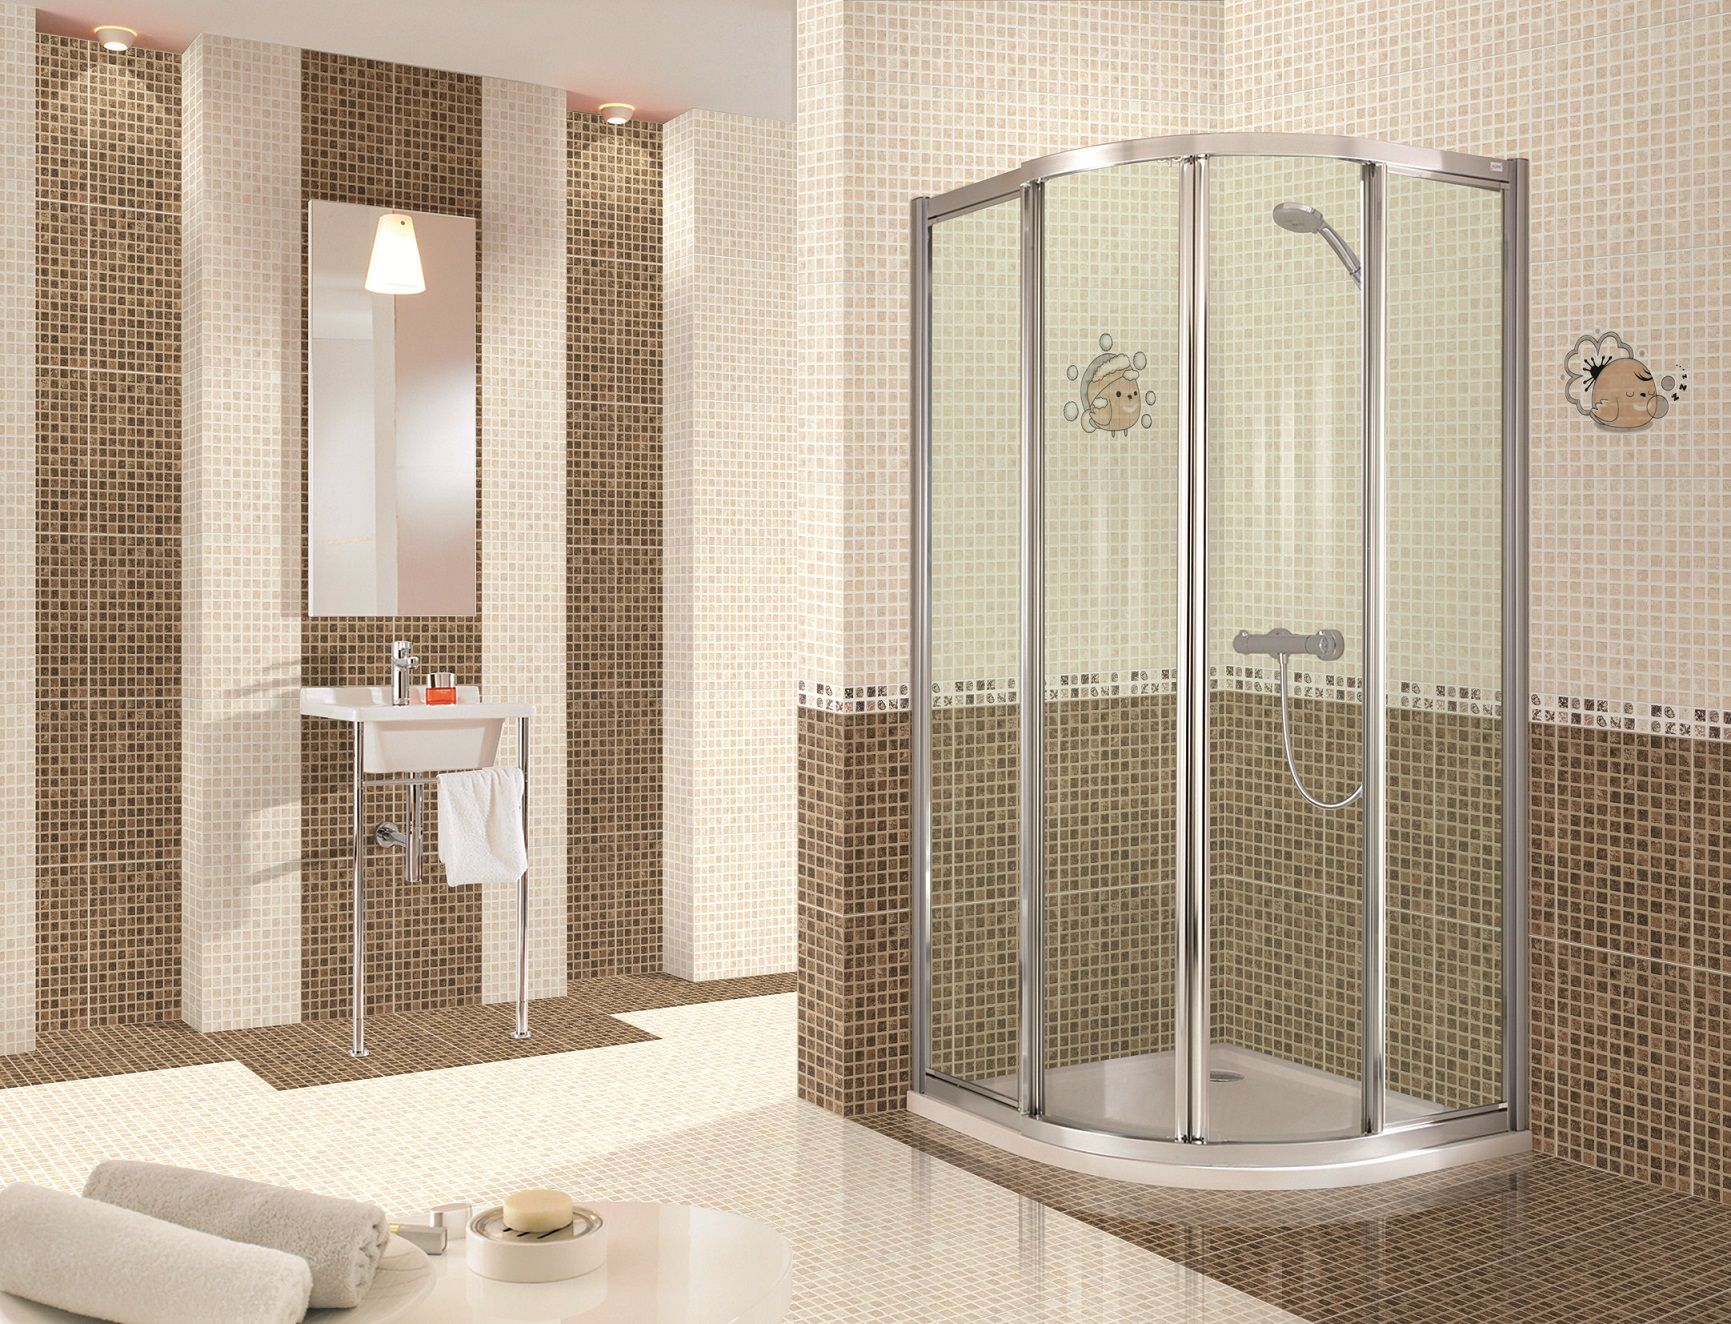 Bathroom Simple Tile Wall Pattern with Transparent Glass Divider